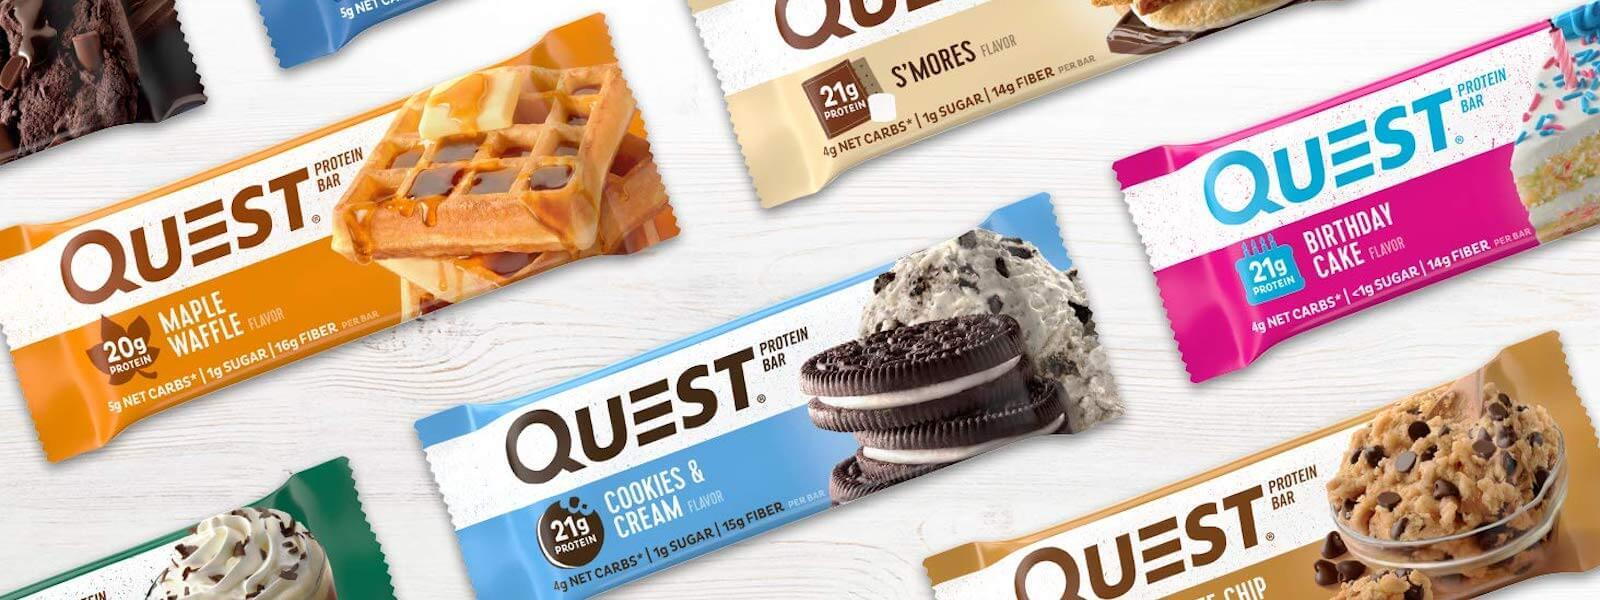 Eat Your Cravings and Stay Healthy with Quest Protein Bars Blog Post at Supplement Superstore Canada